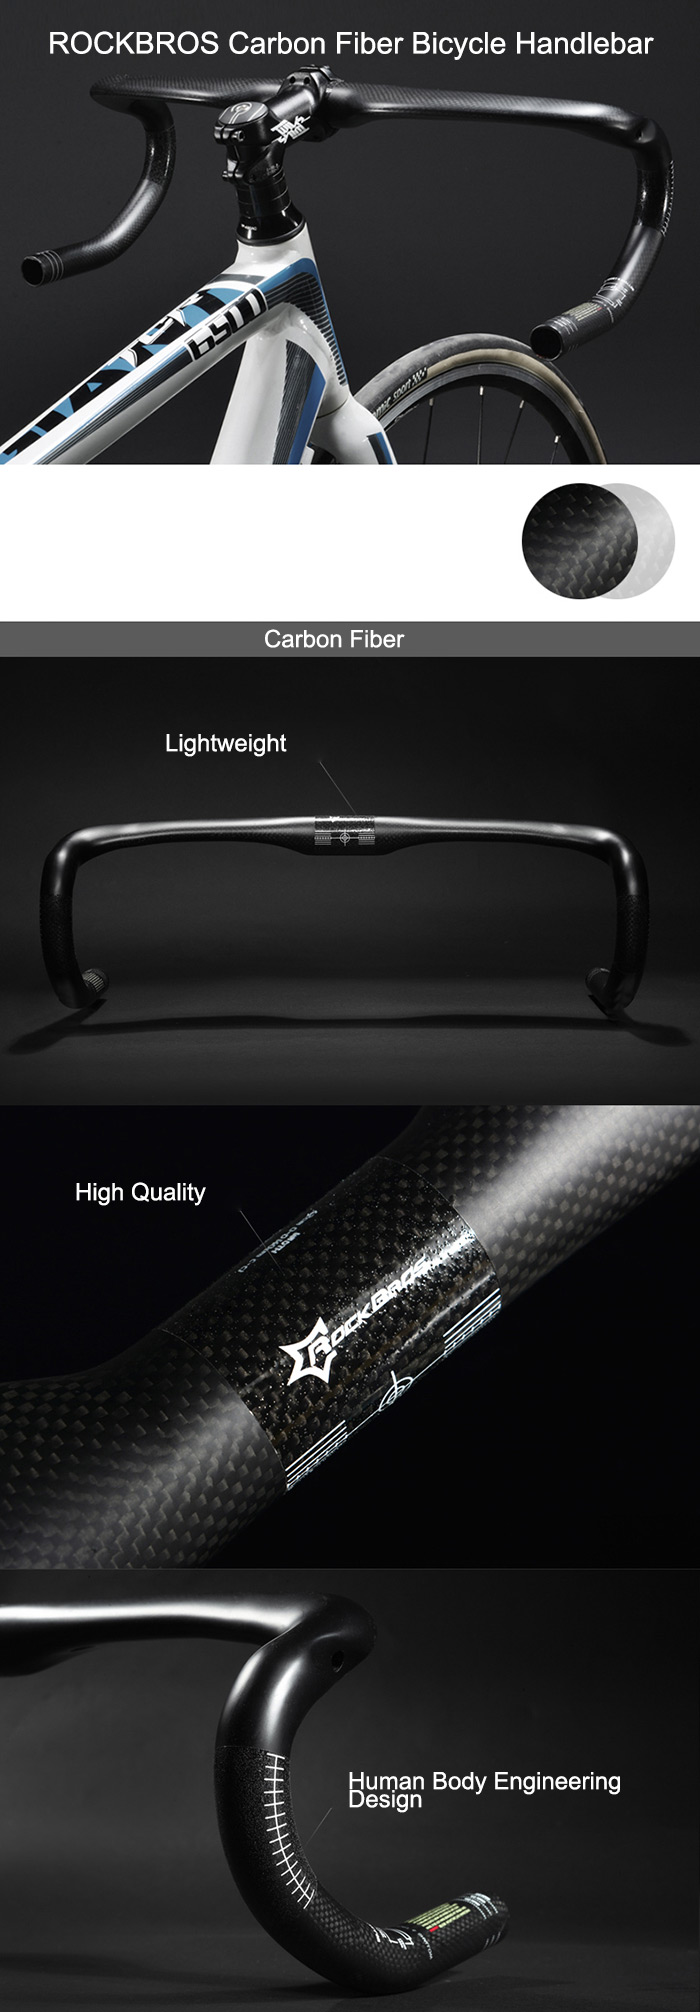 ROCKBROS 31.8 400/420/440 Carbon Fiber Bicycle Handlebar for Road Cycling